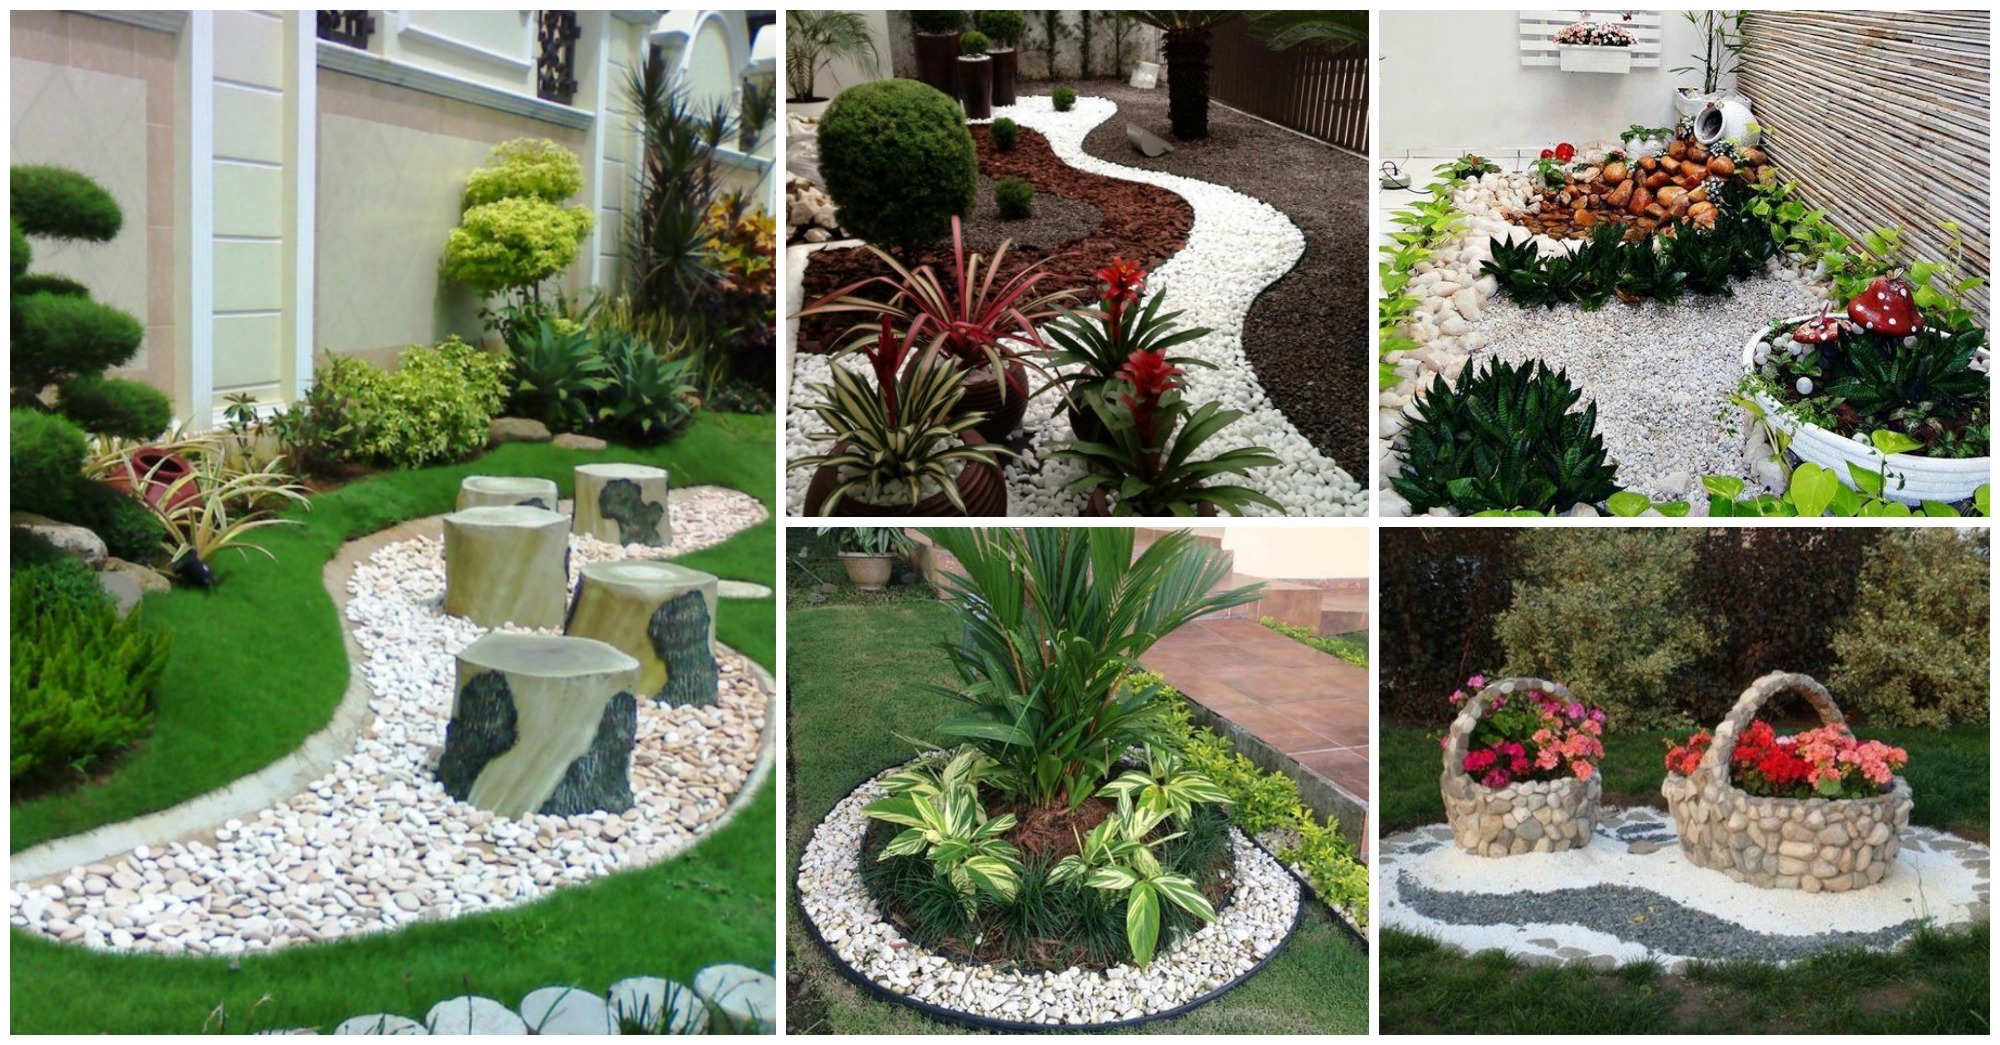 12 fant sticas ideas para dise ar un jard n con piedras for Ideas para patios y jardines